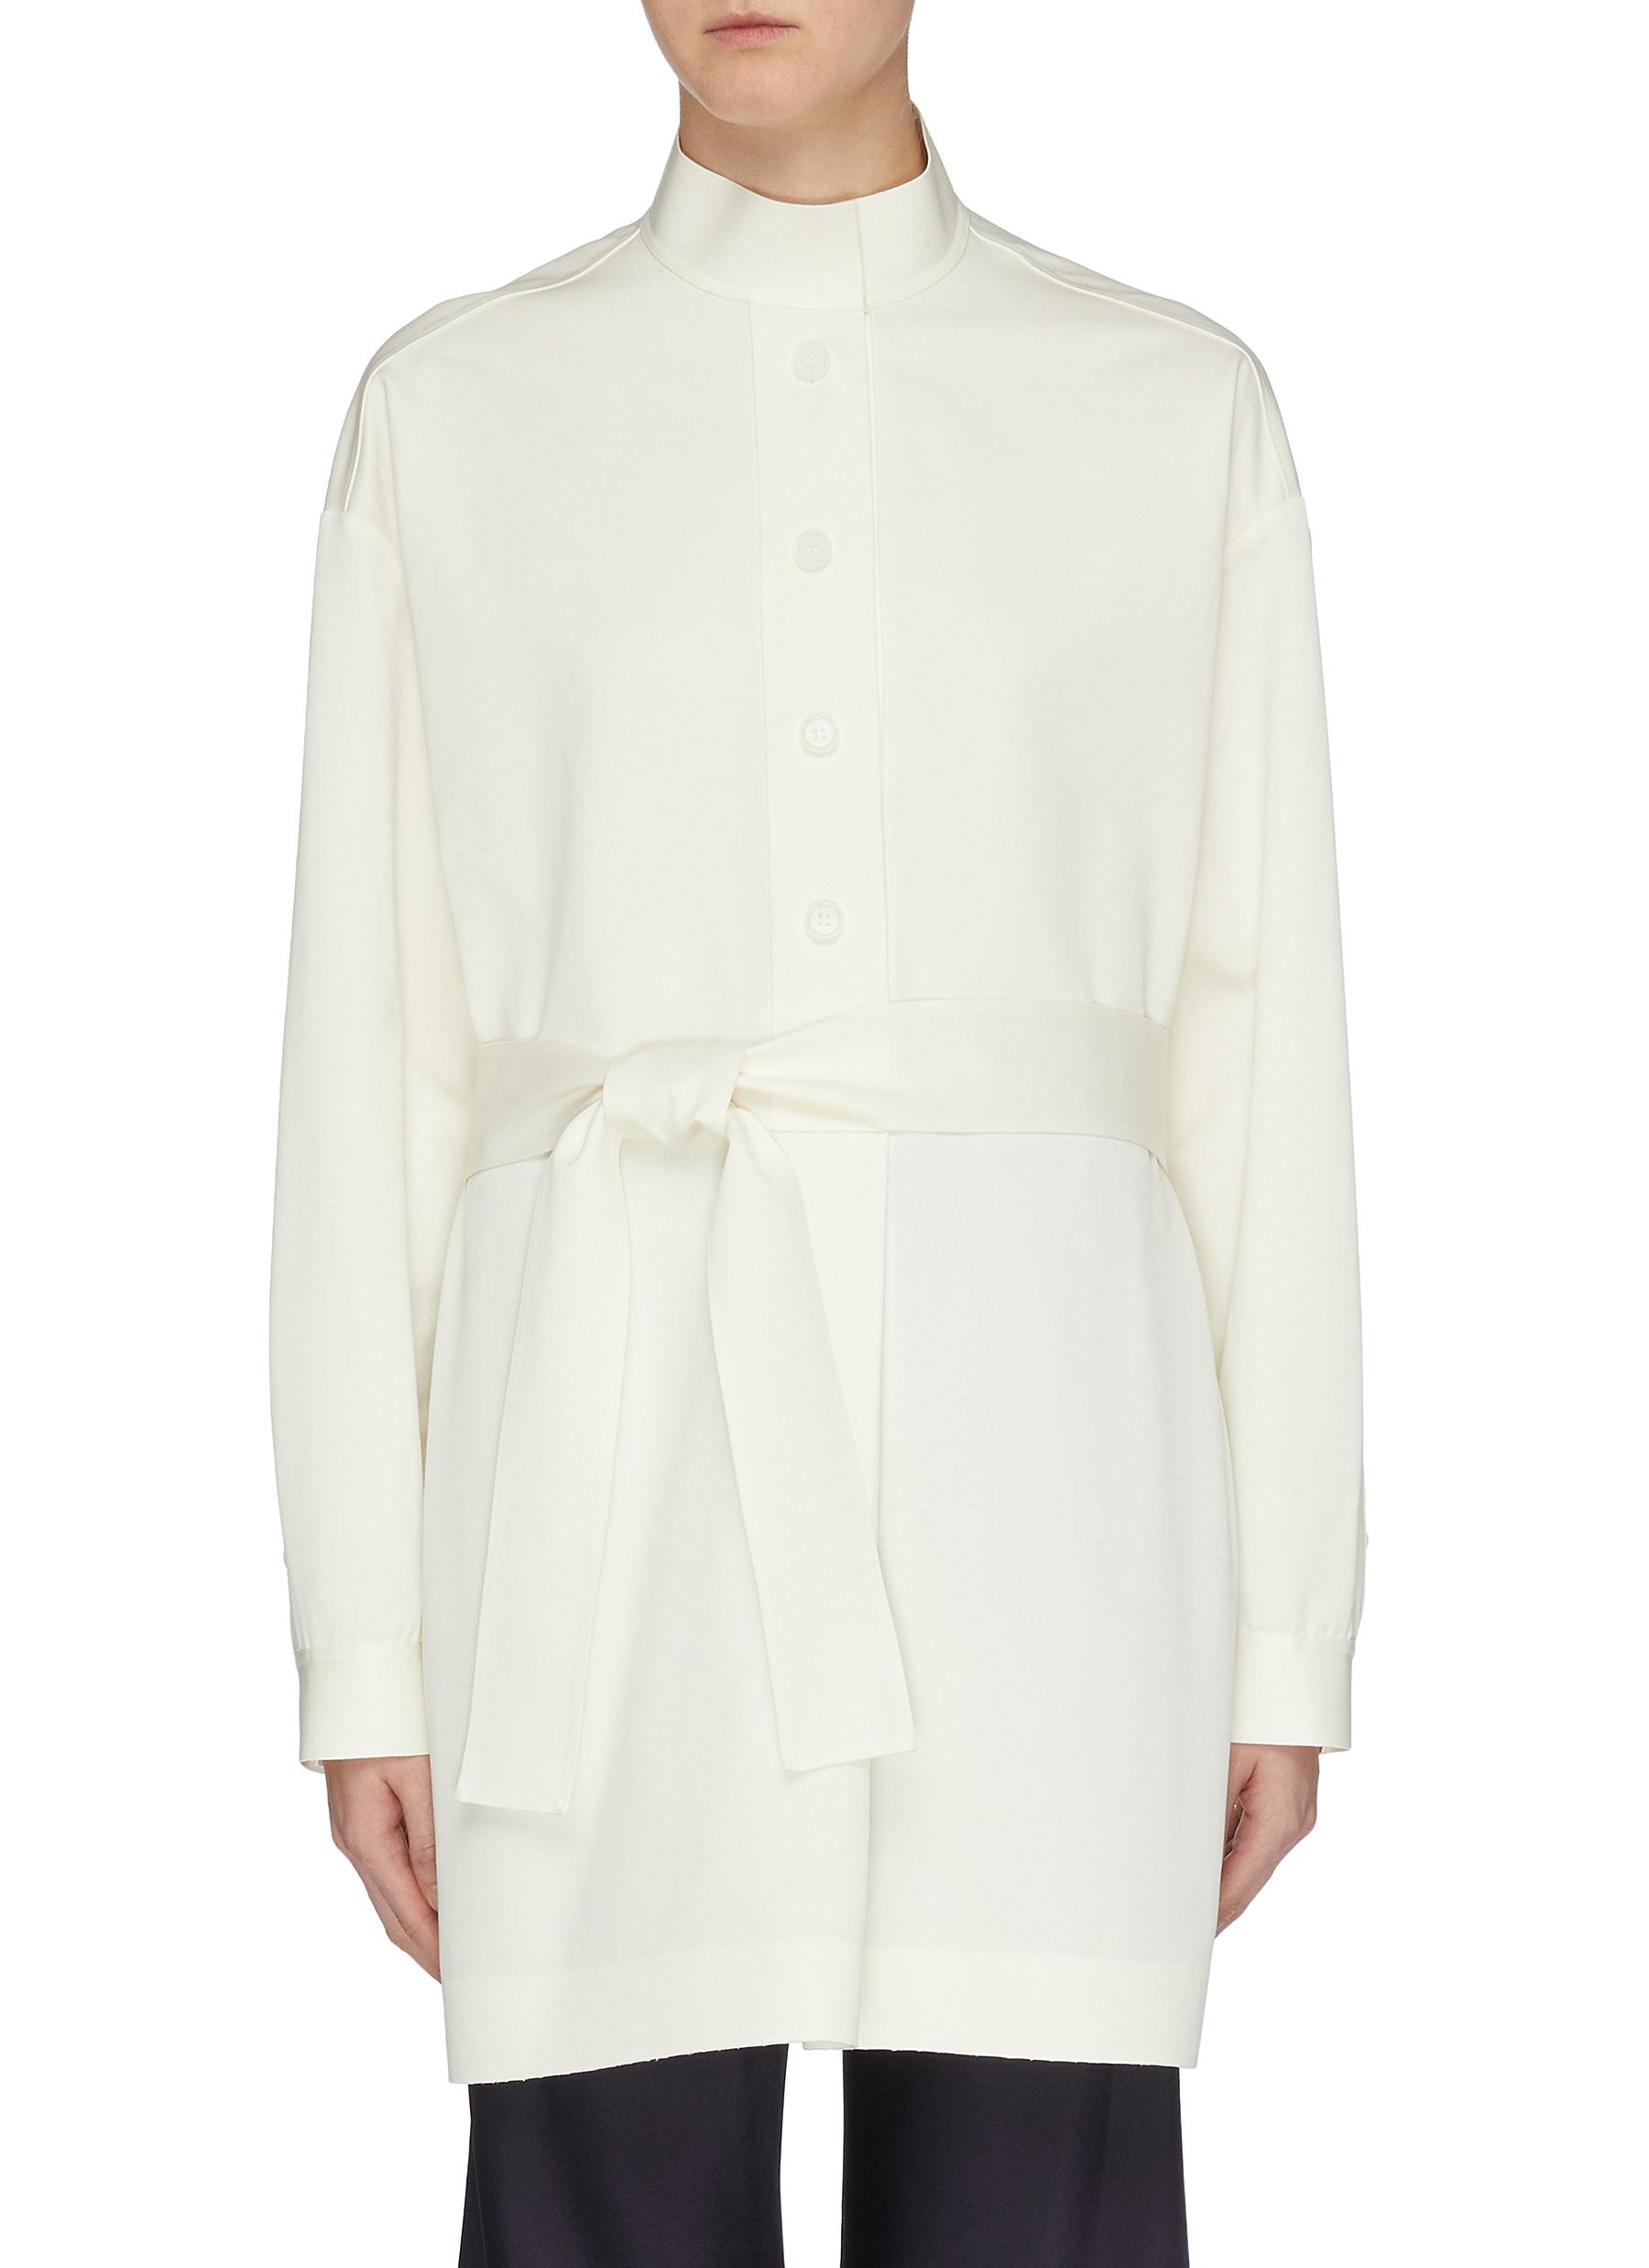 Big Varo belted mock neck oversized shirt by The Row